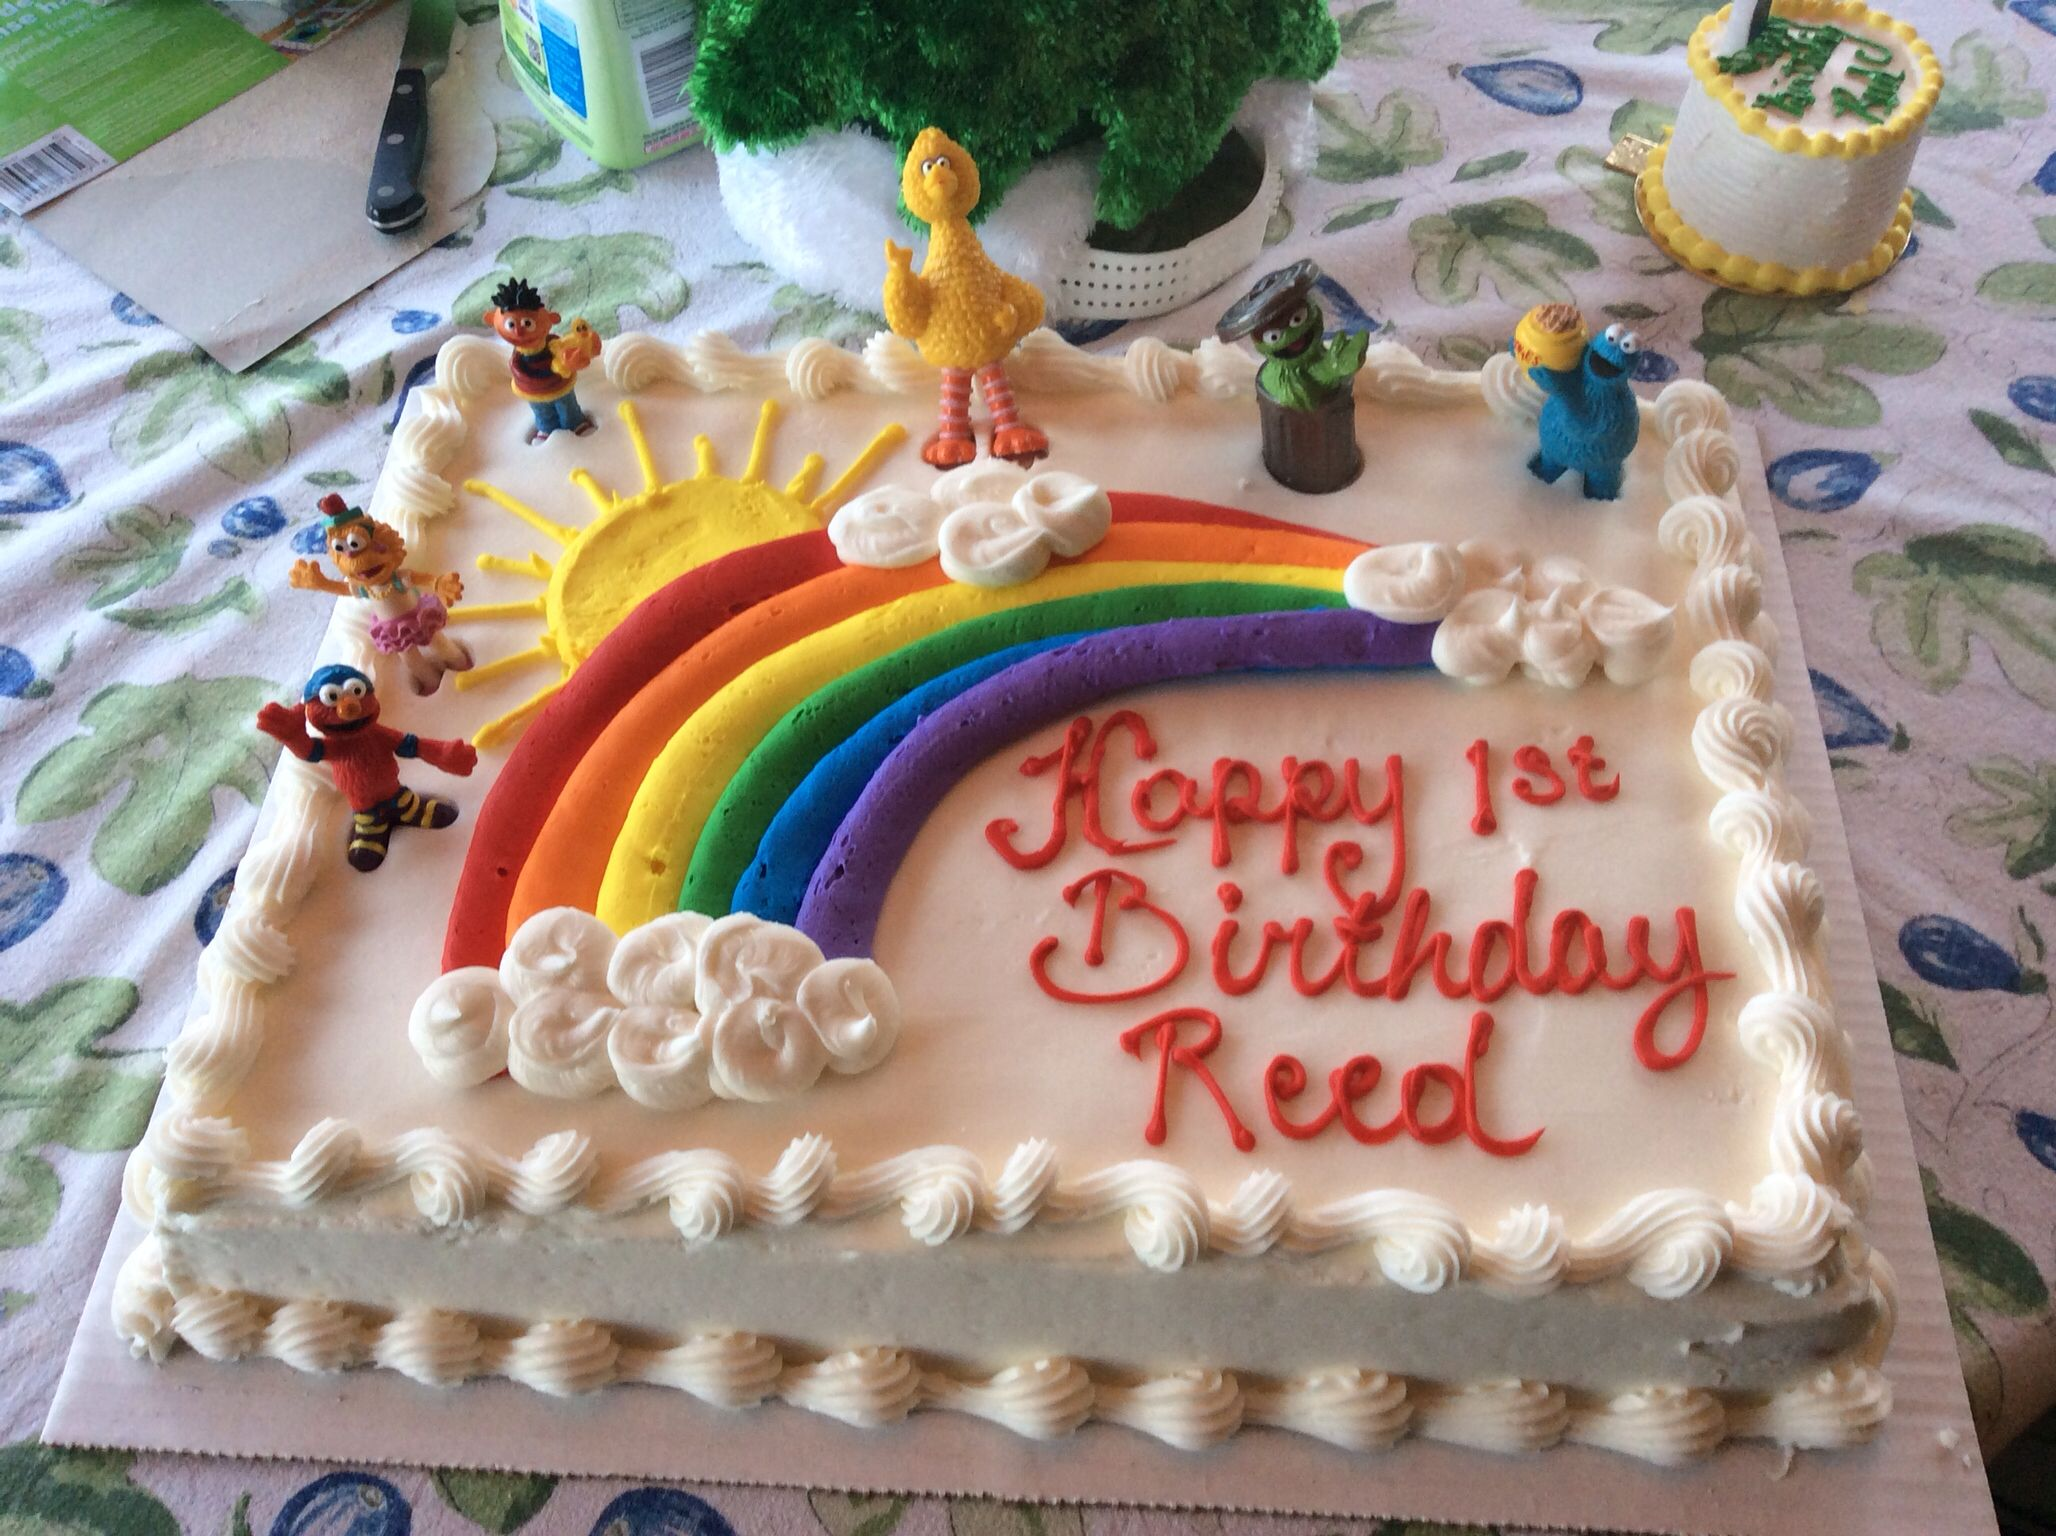 Pleasant Sesame Street Birthday Cake Costco With Images Sesame Street Personalised Birthday Cards Veneteletsinfo